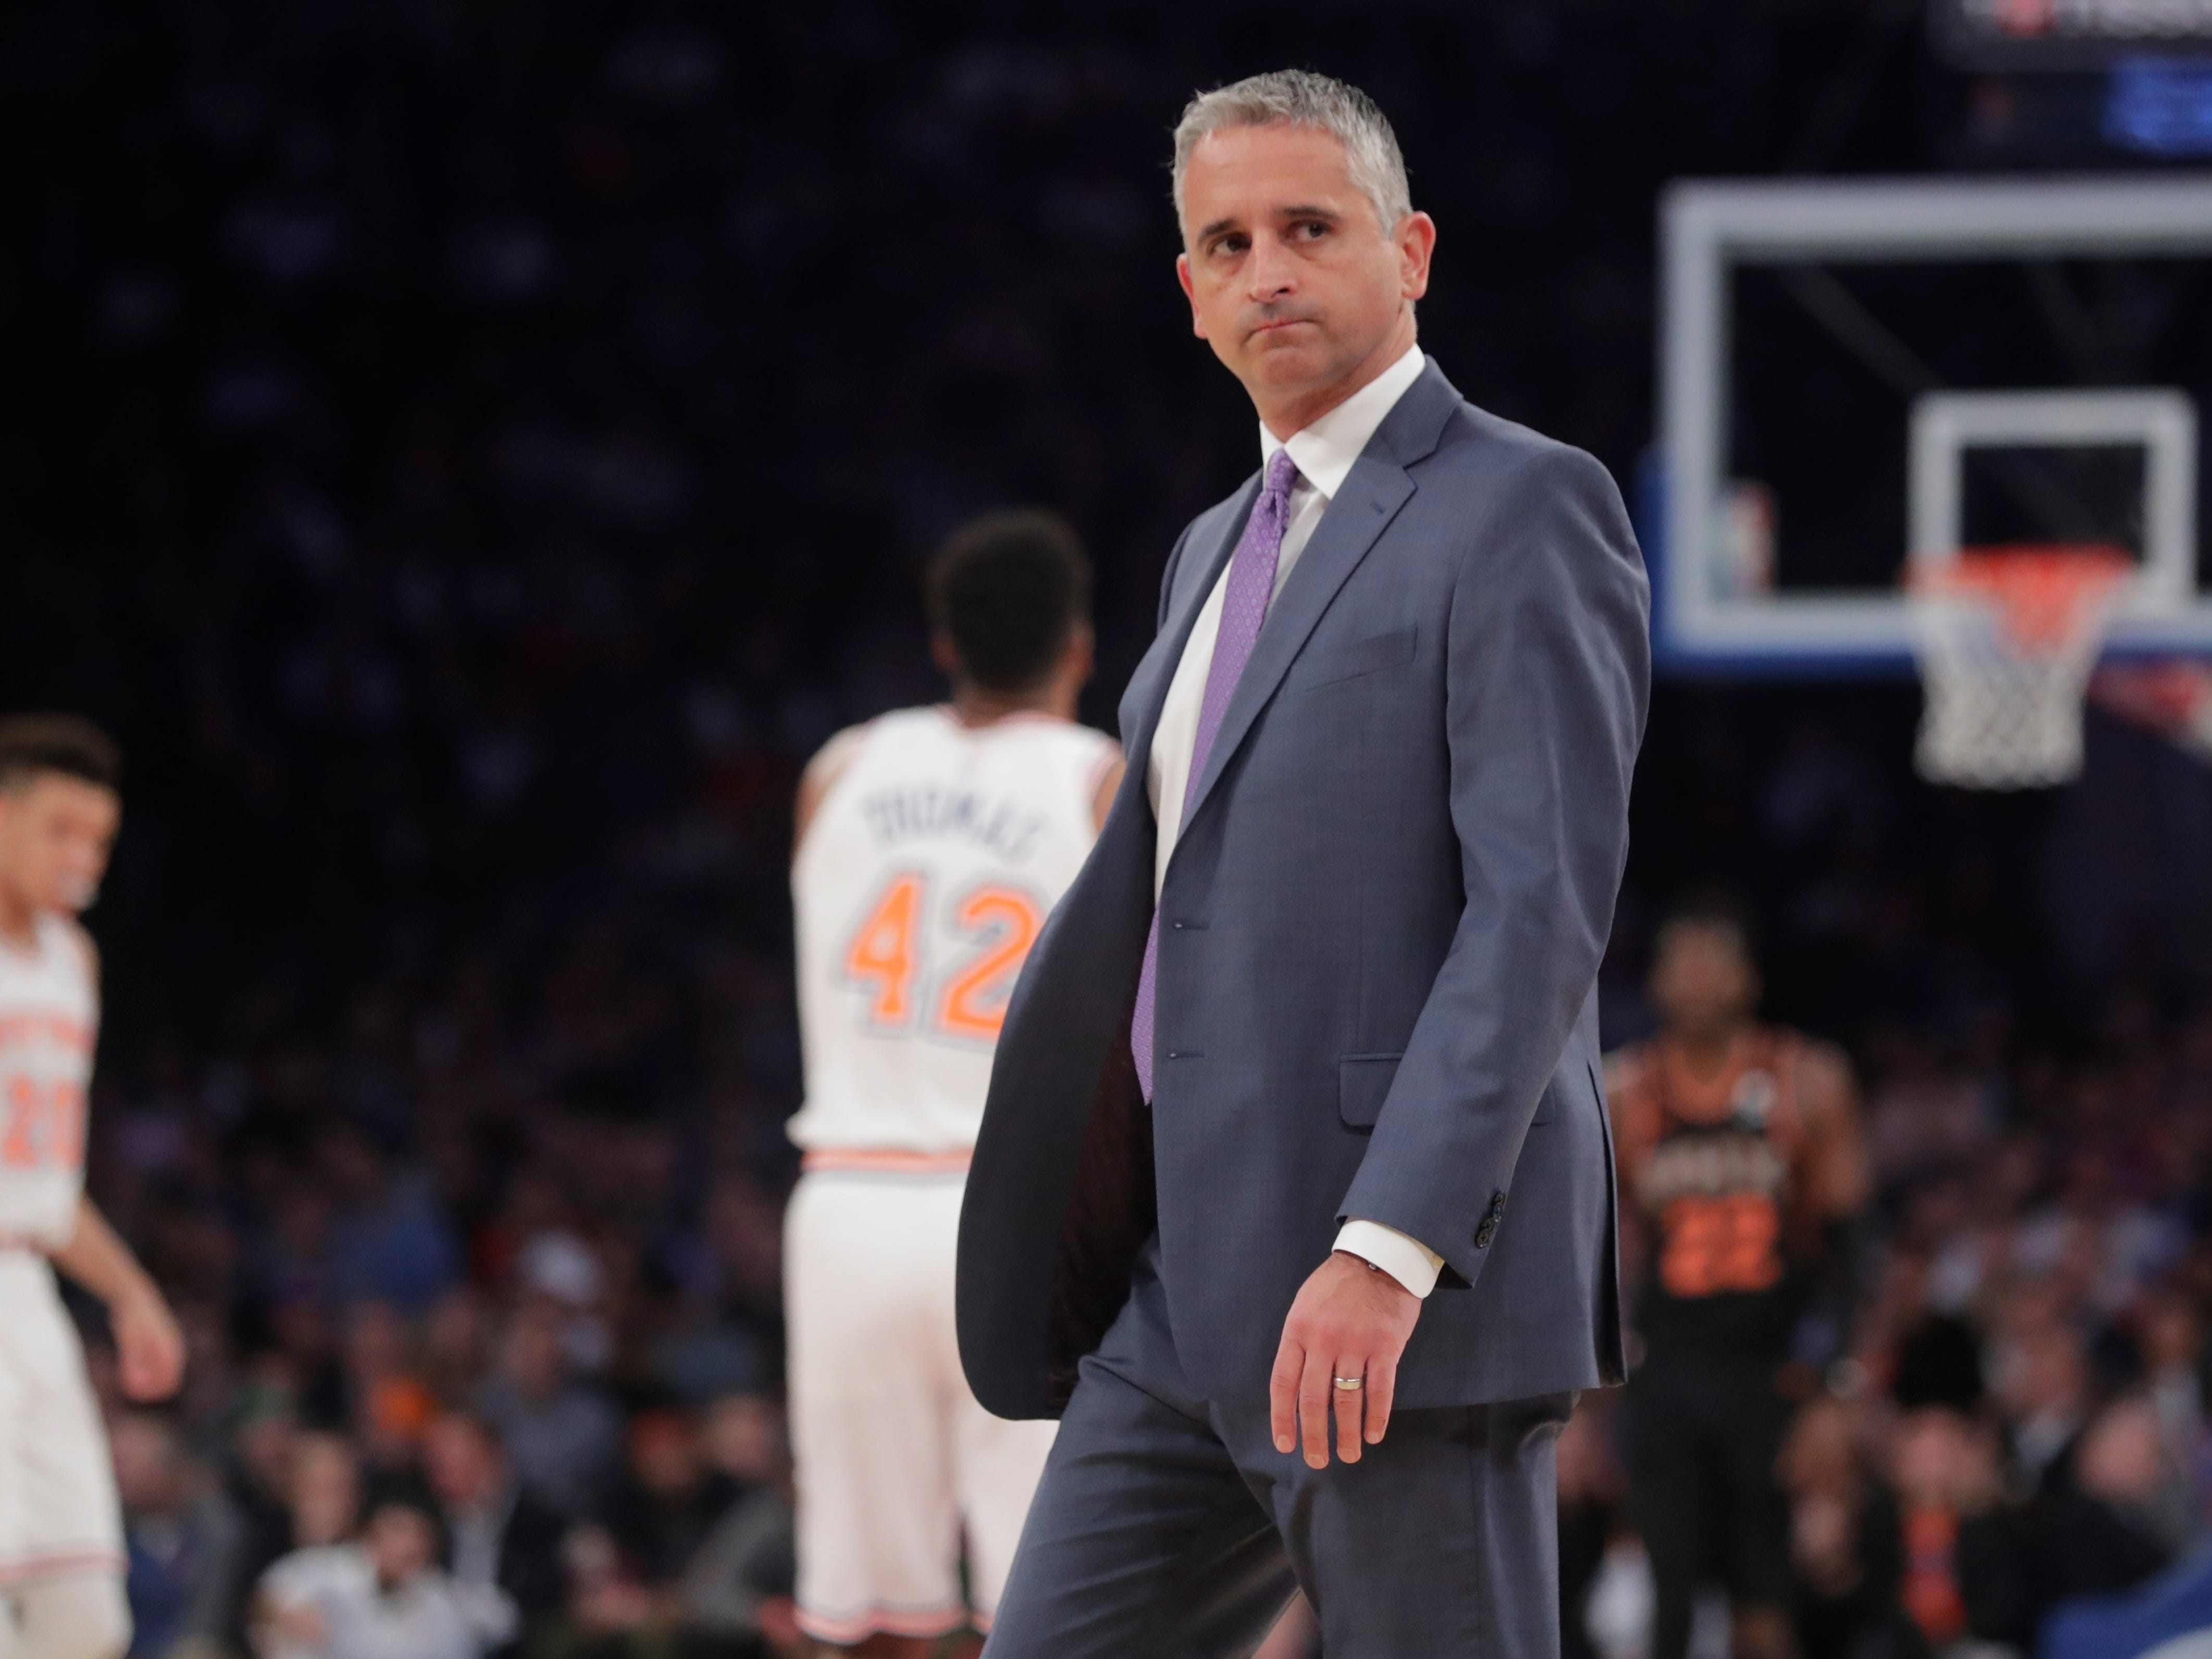 Phoenix Suns head coach Igor Kokoskov reacts during the first half of an NBA basketball game against the New York Knicks, Monday, Dec. 17, 2018, in New York.